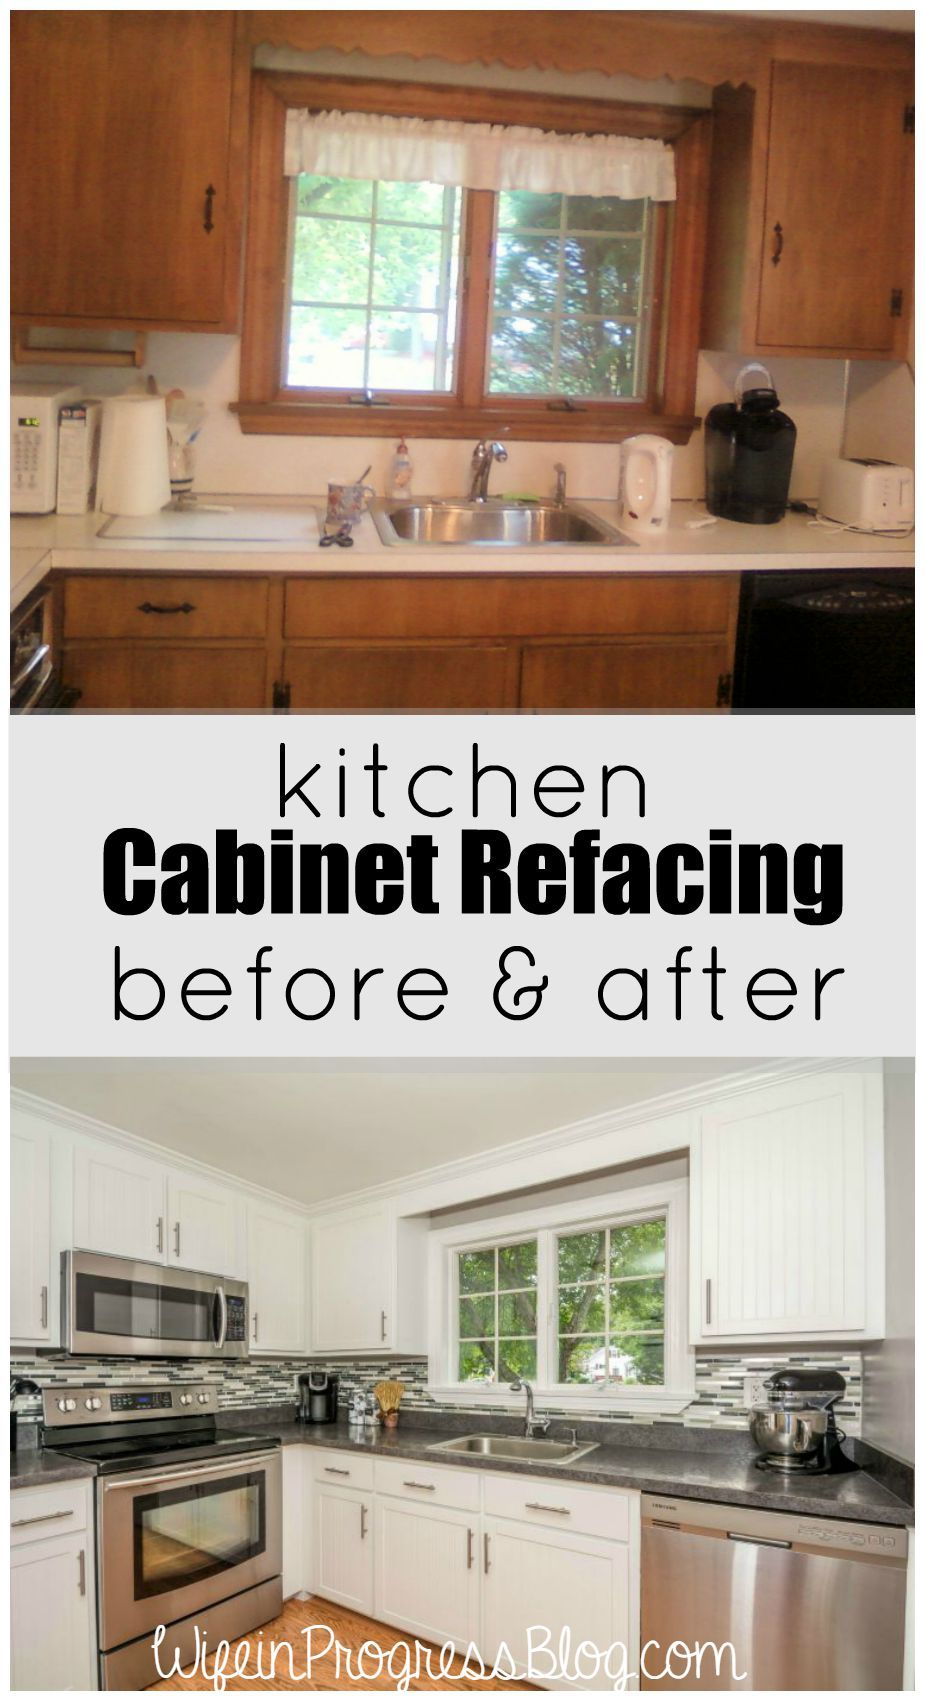 how to reface old kitchen cabinets kitchen cabinet refacing a cheaper solution than ripping 17290